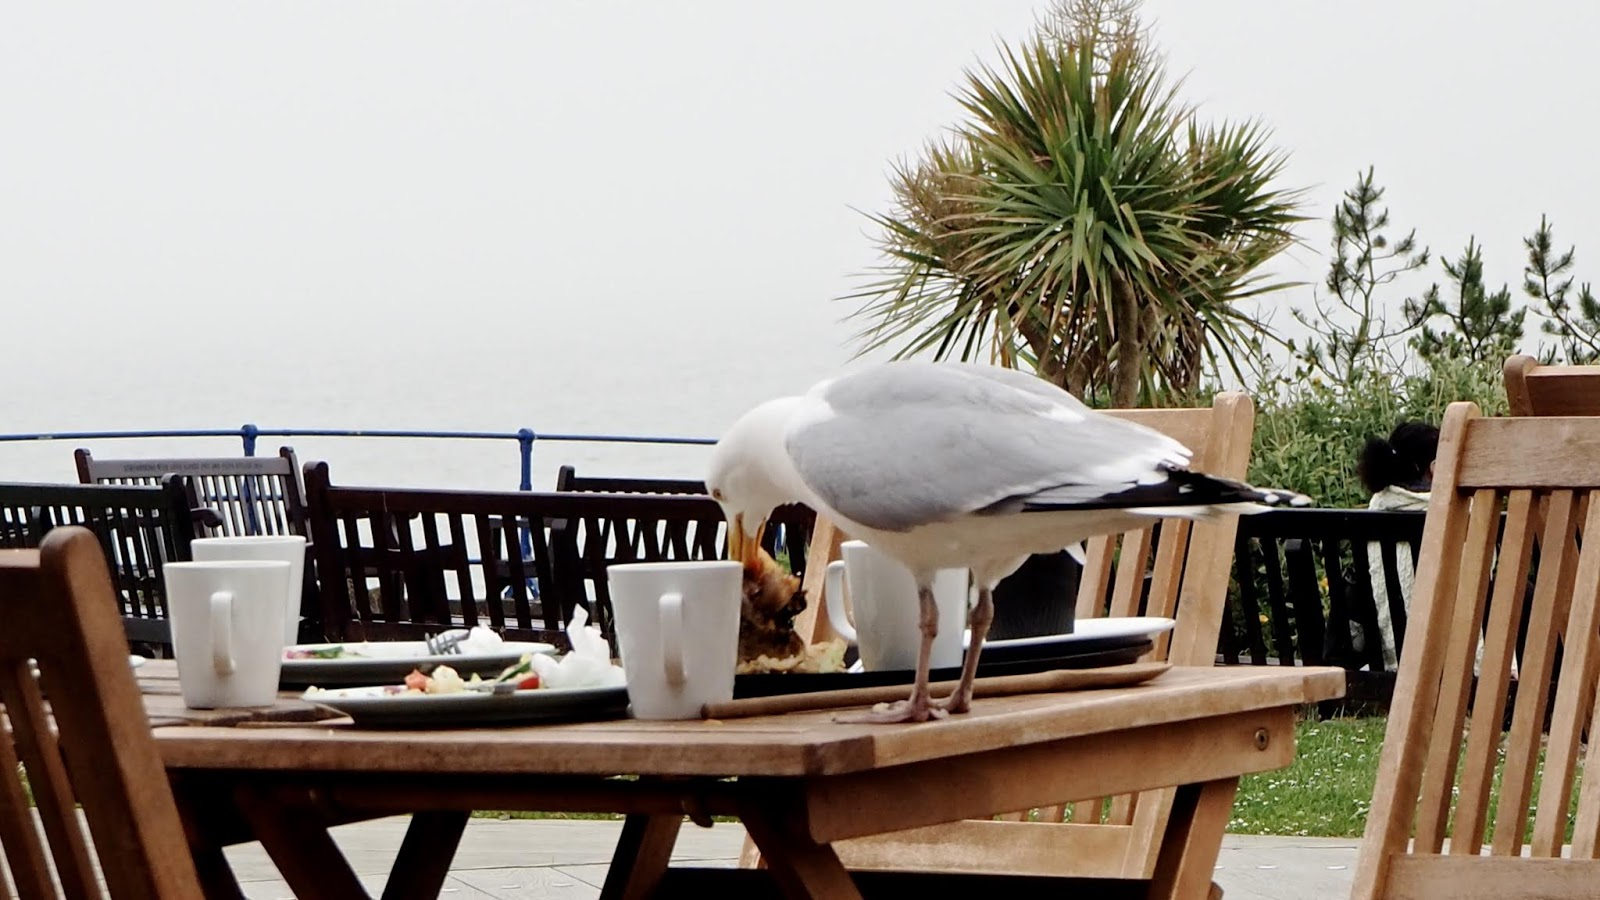 seagull eating a sandwich